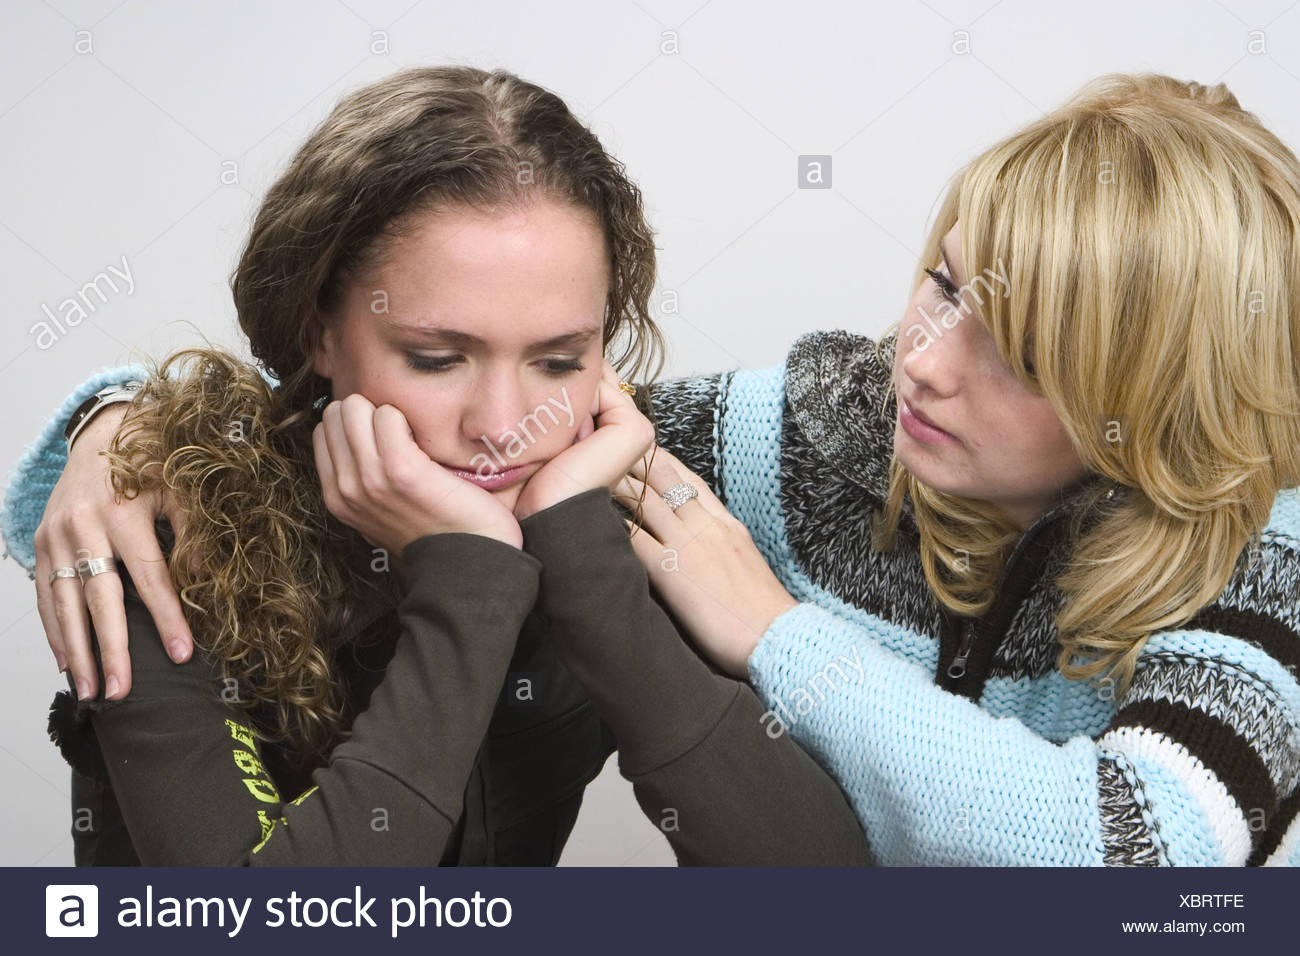 Friends soothing each other - Stock Image